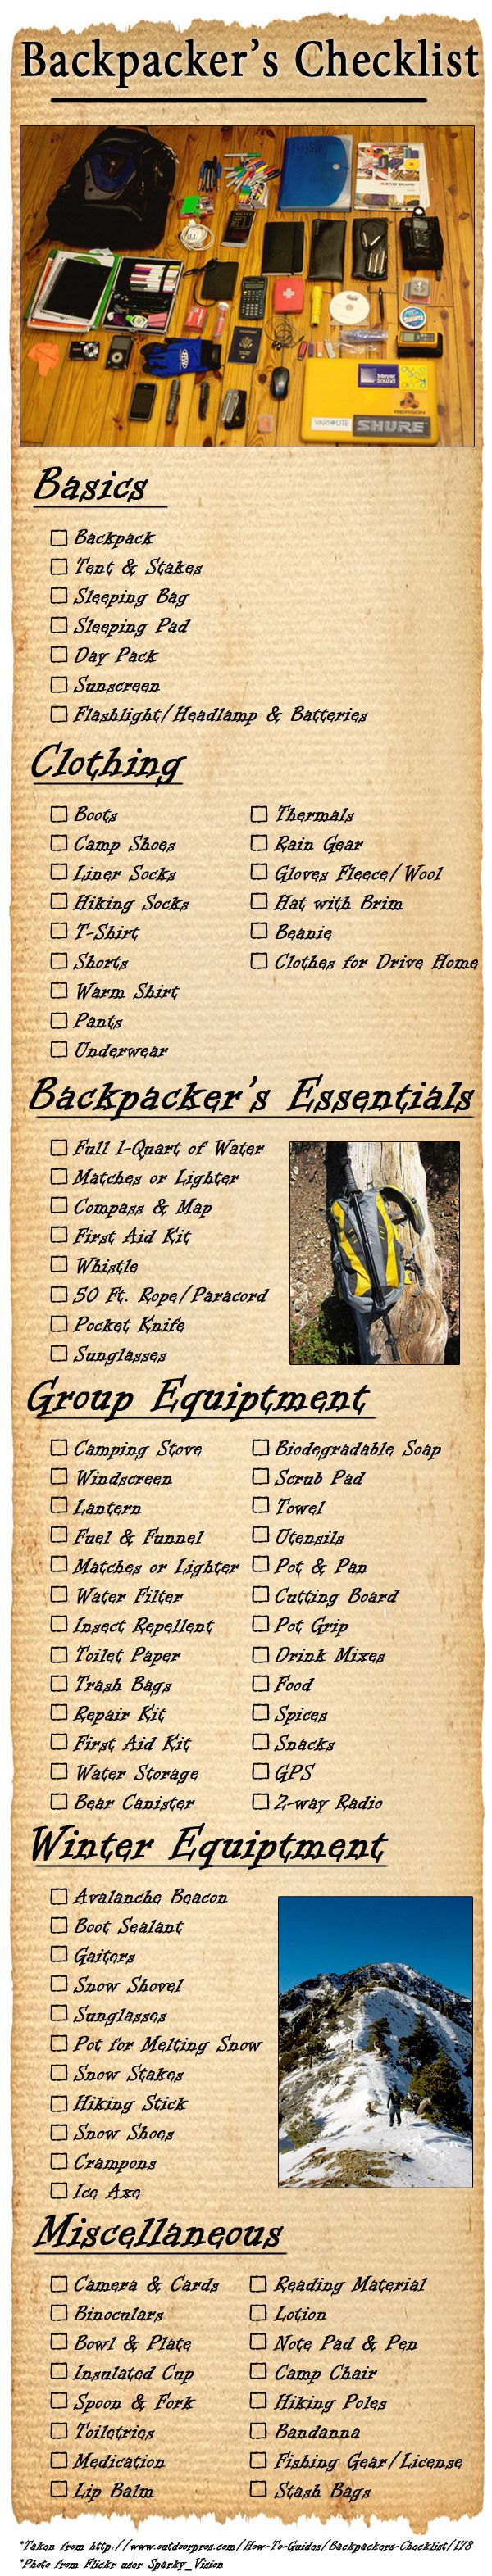 Backpackers & Campers Checklist (Infographic) | OPAdventureTeam.com